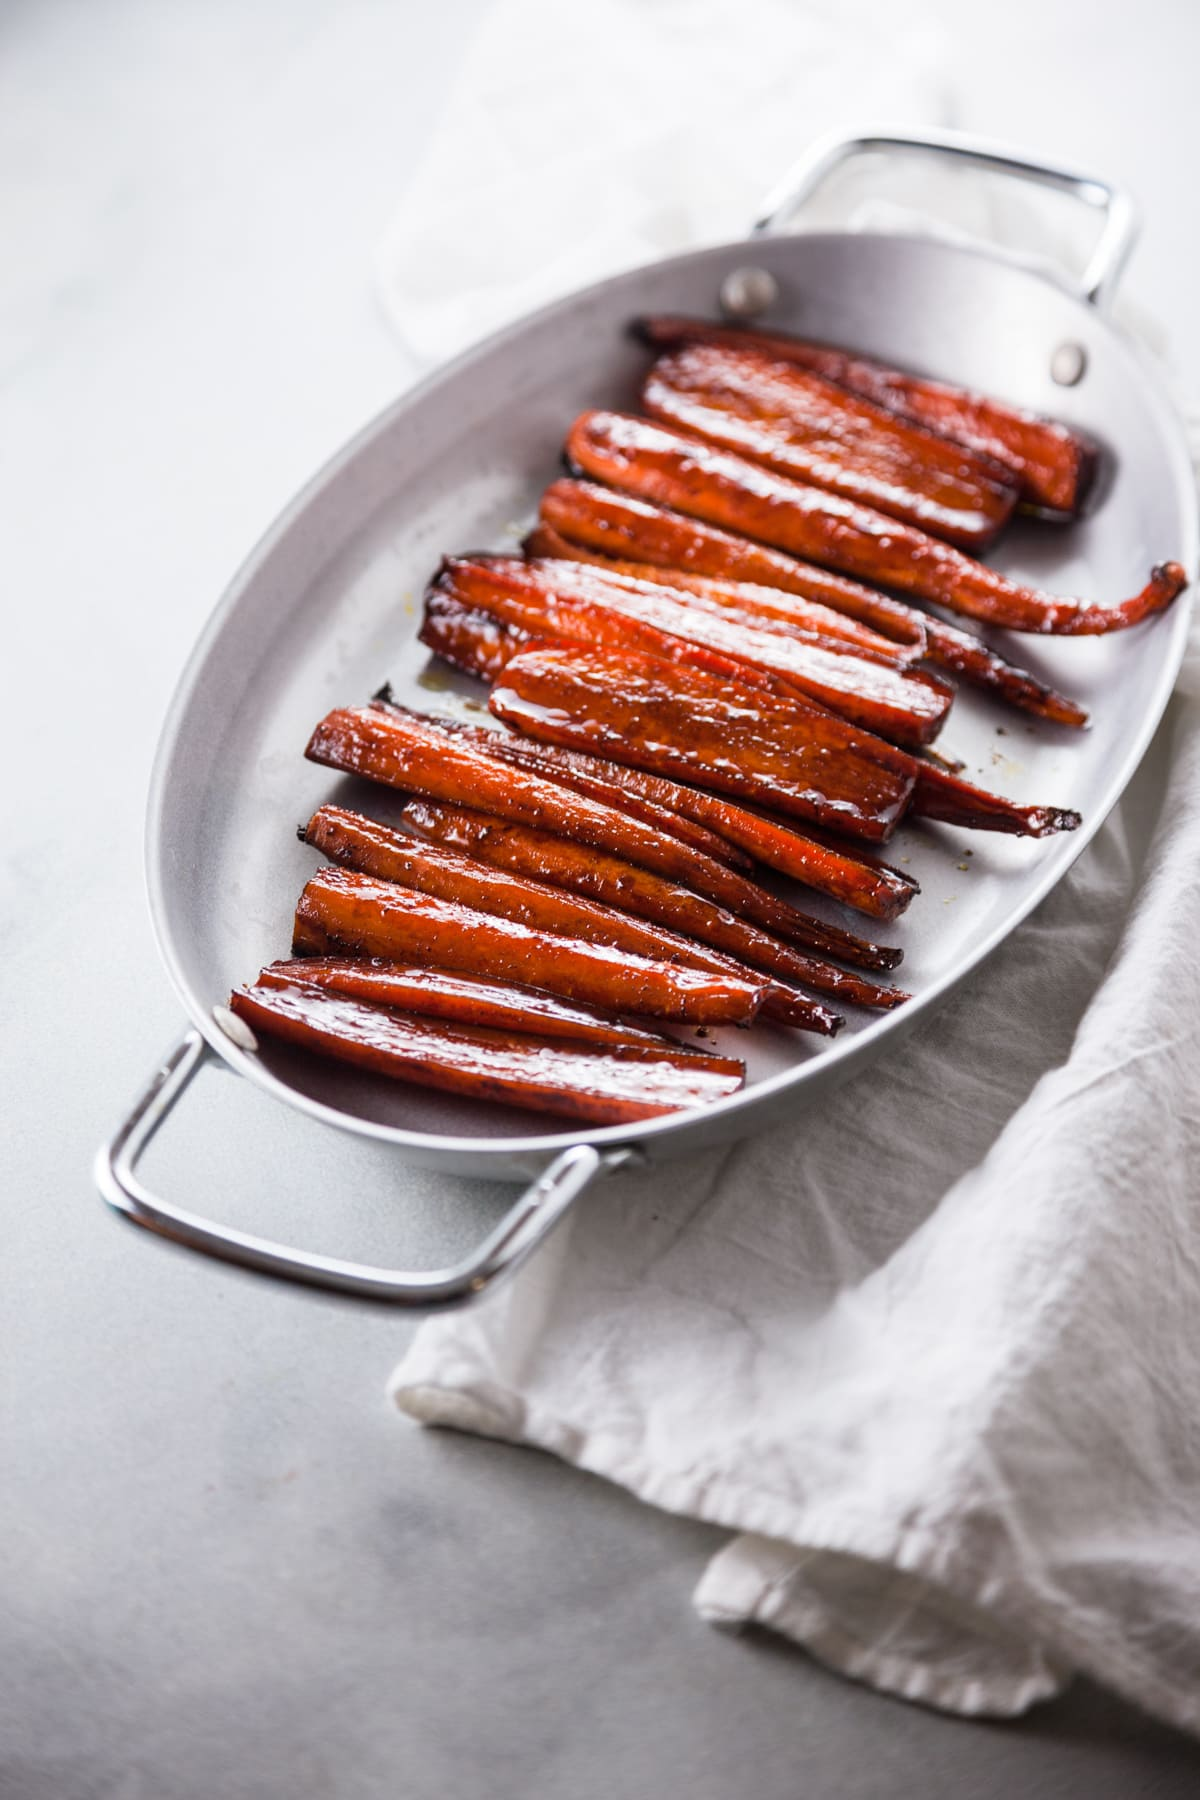 Balsamic Glazed Roasted Carrots in a silver dish.